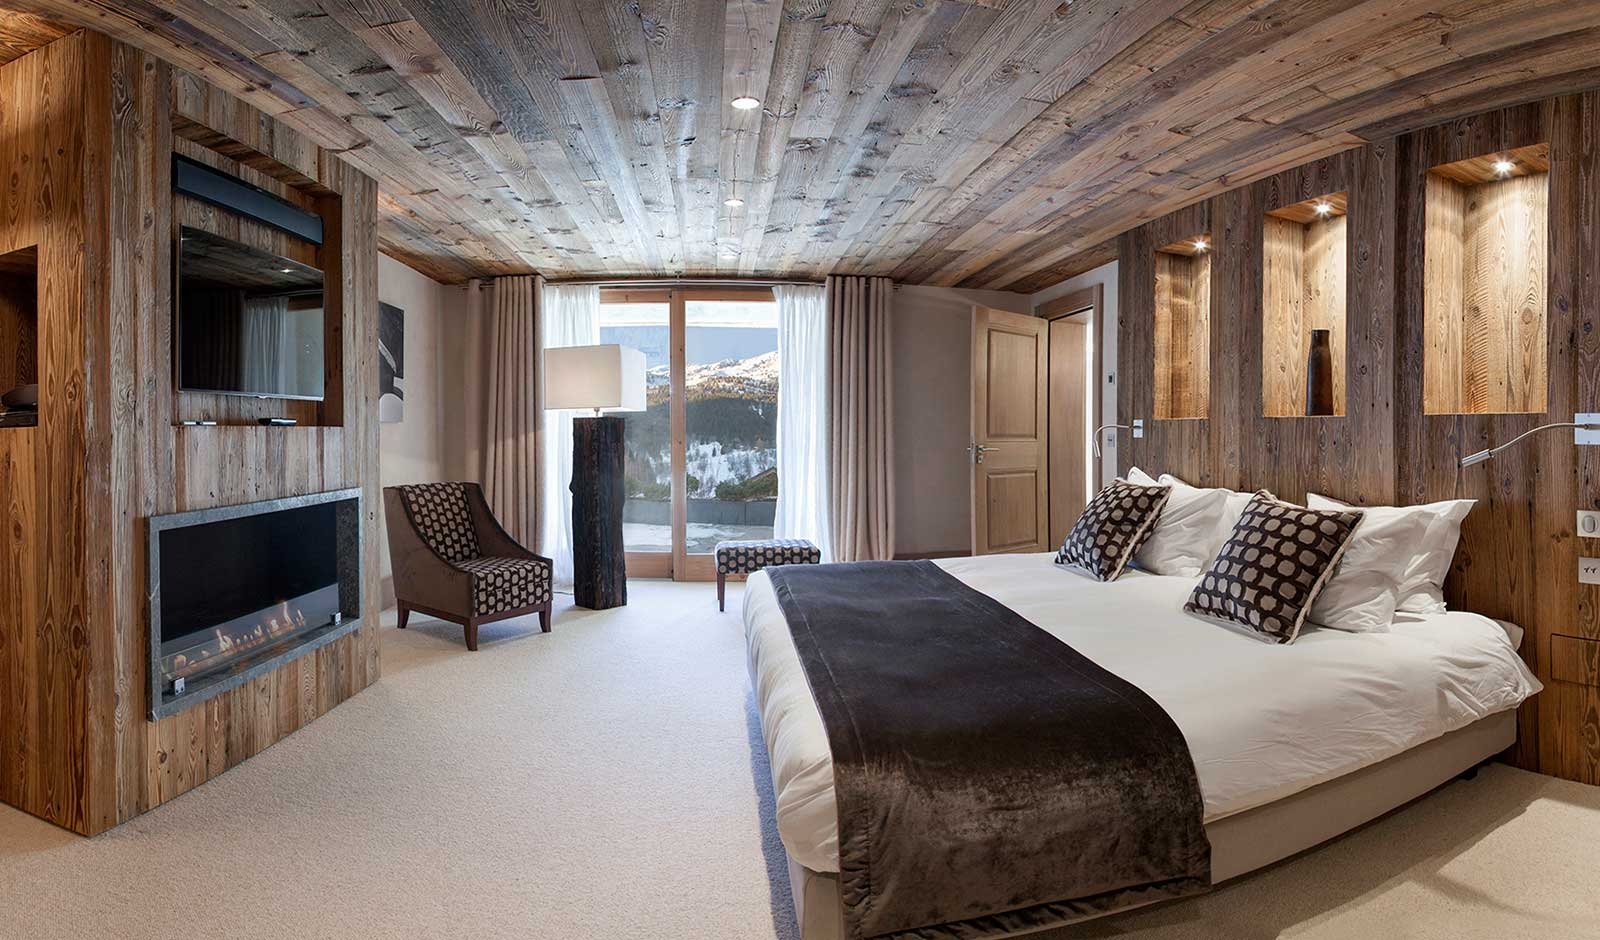 chalet-mont-tremblant-4-atelier-crea-and-co-architecte-design-project-manager-meribel-savoie